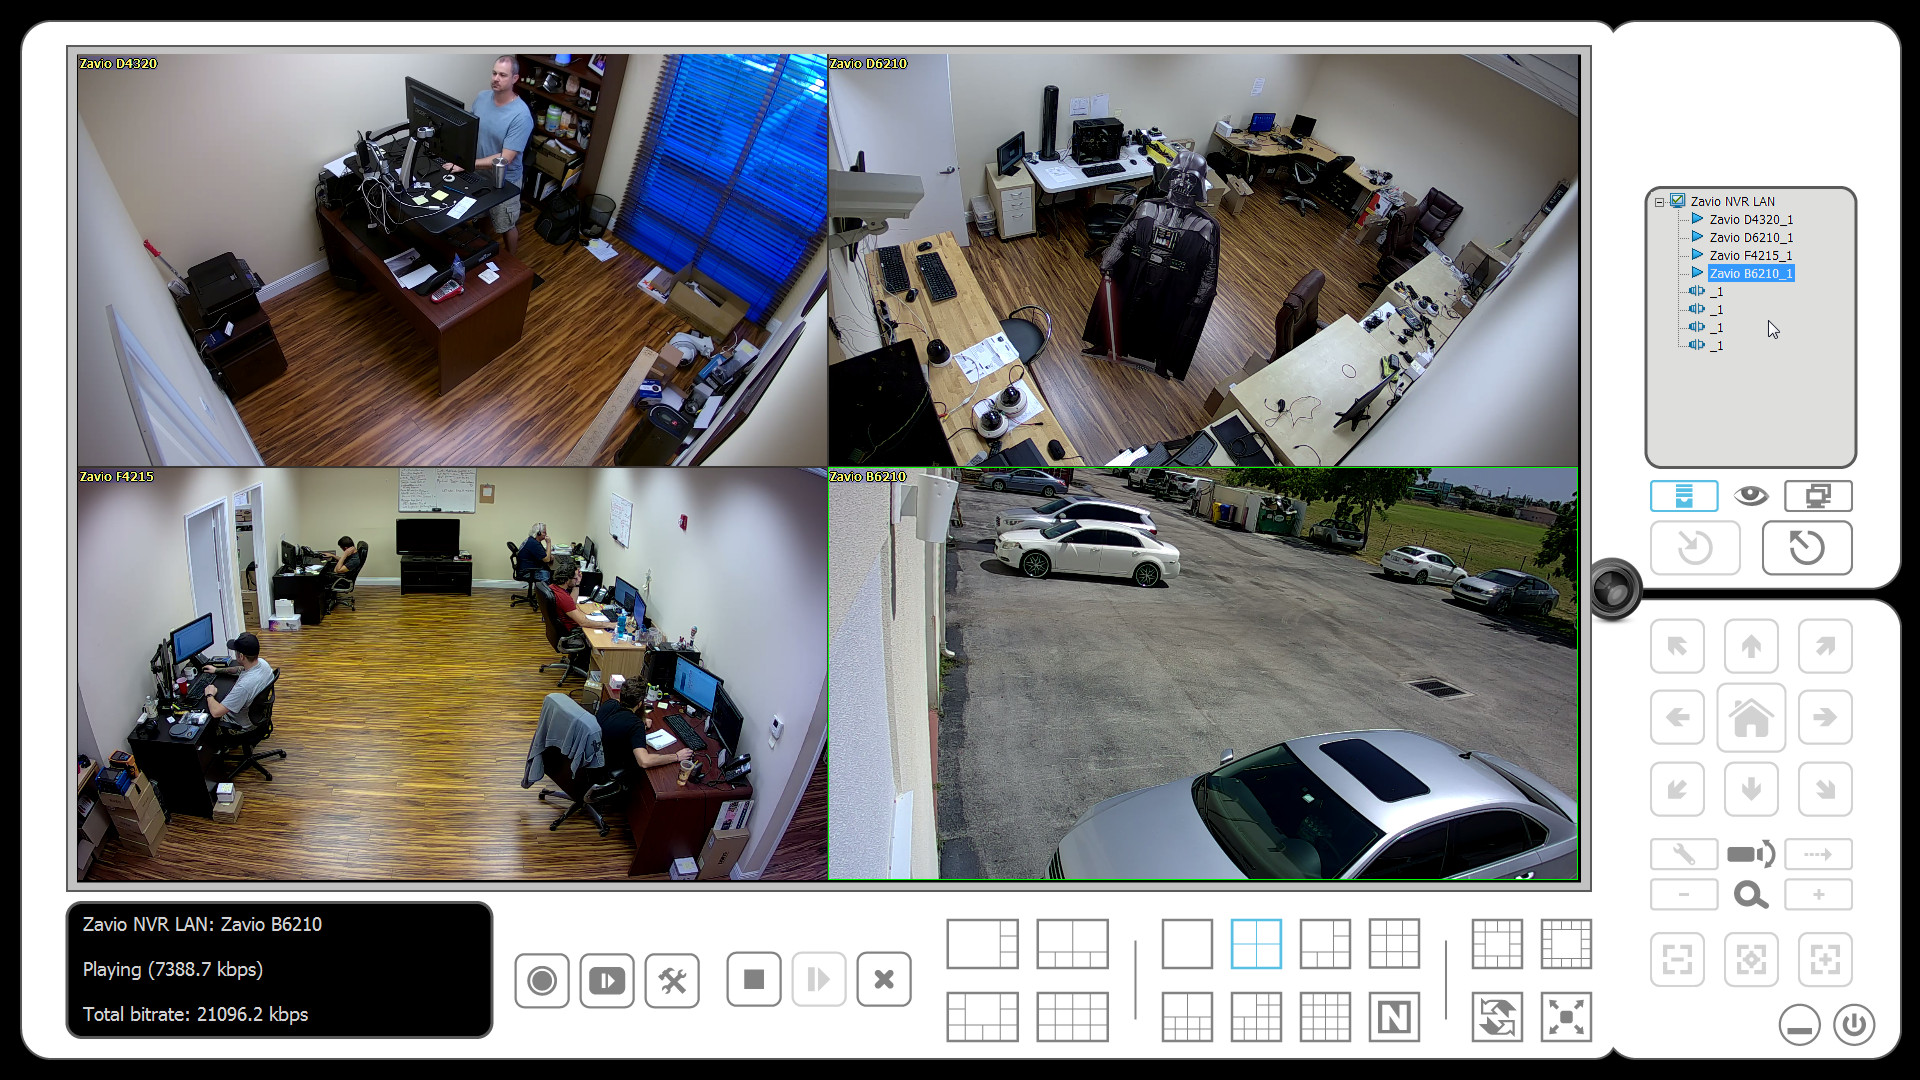 How Safe Are IP Surveillance Systems